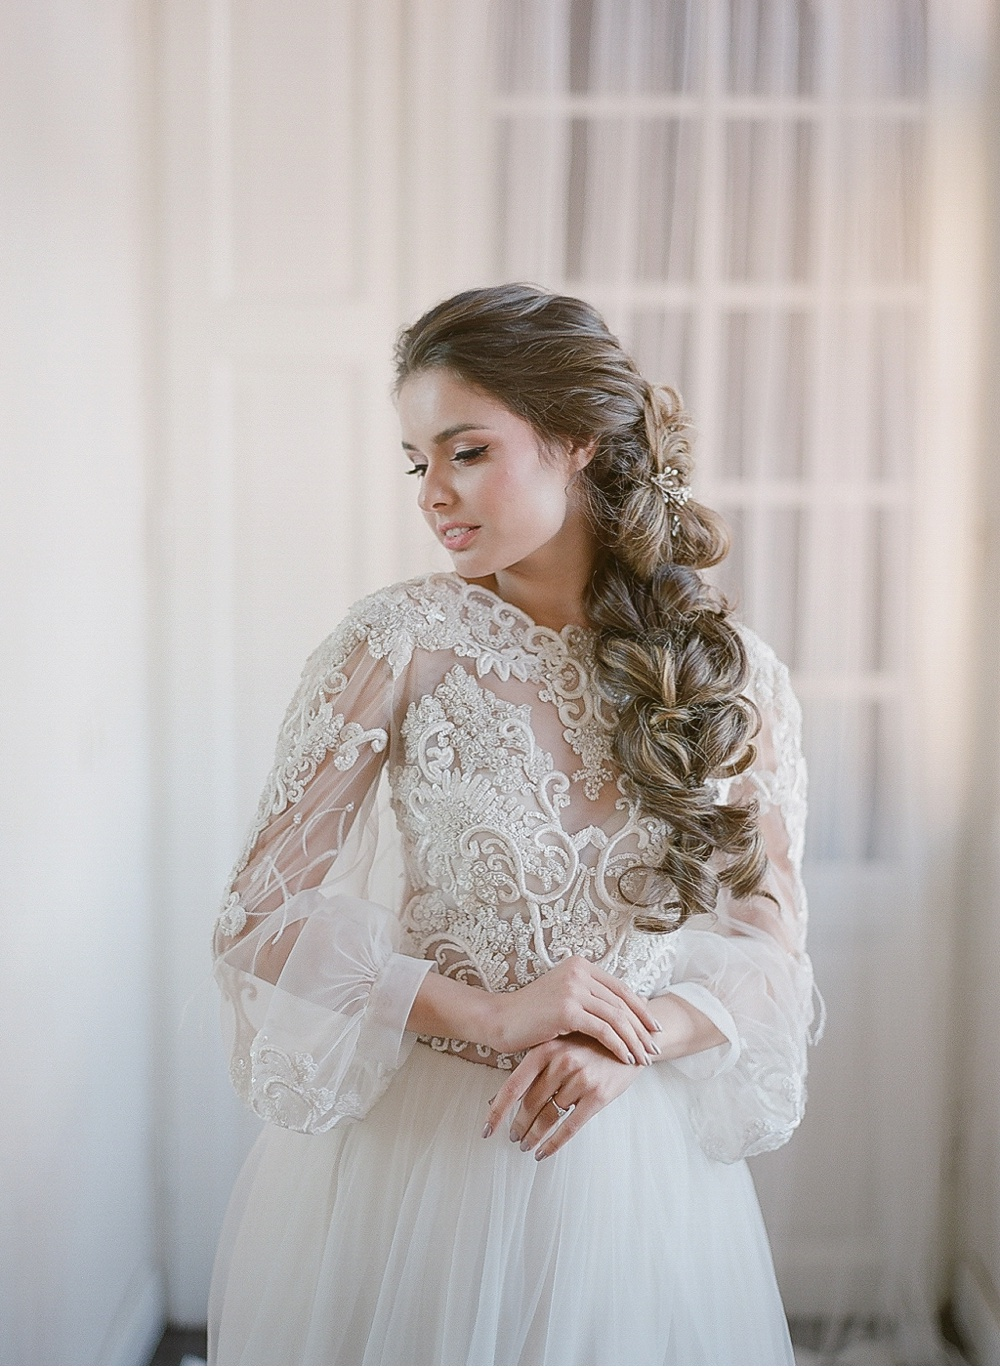 FineArt_Bridal_Shooting__0009.jpg